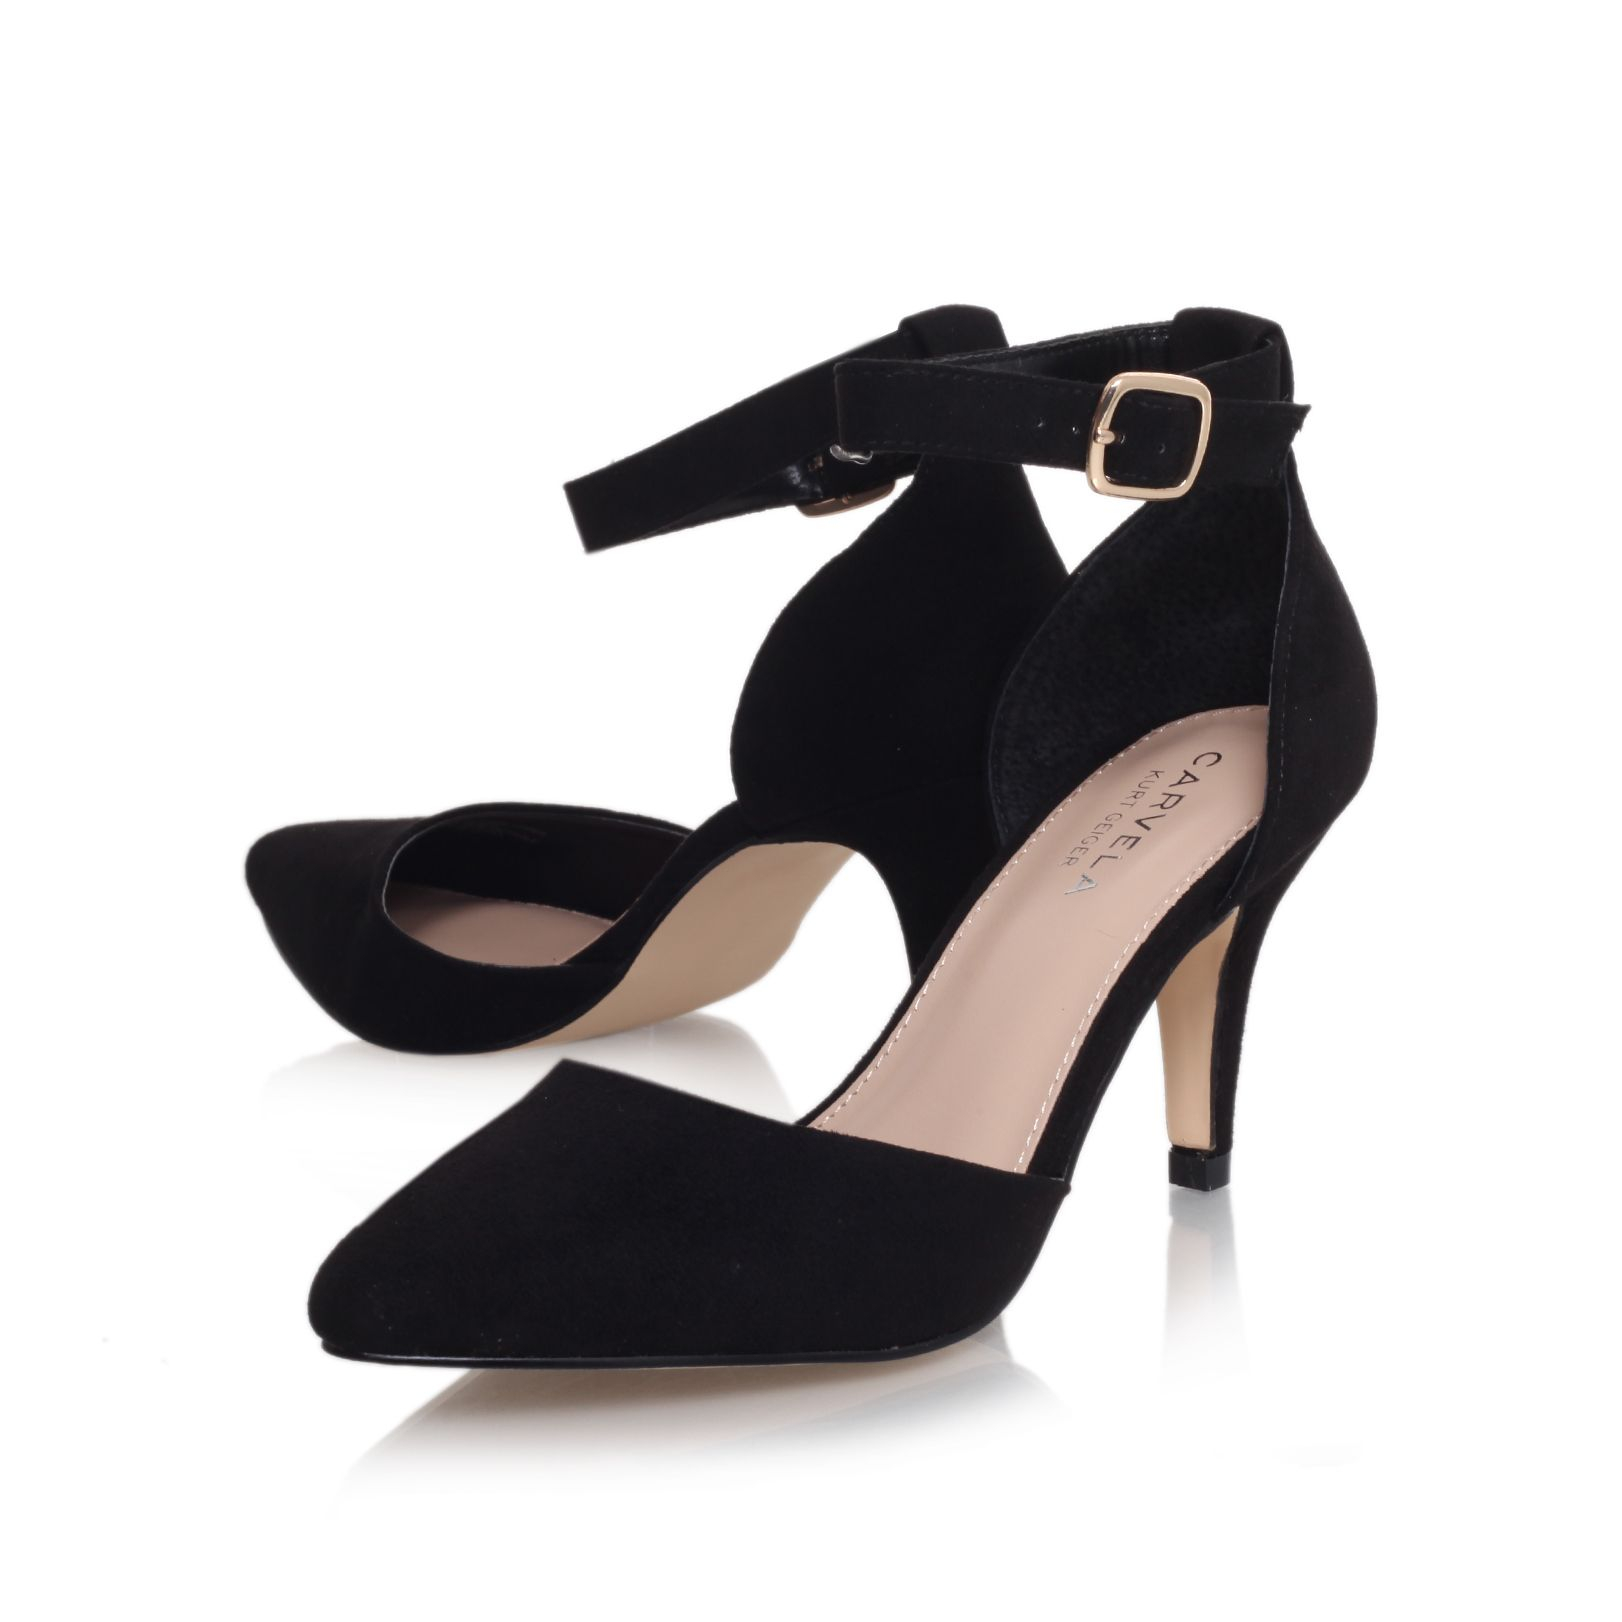 Kurt Geiger Black Ankle Strap Shoes